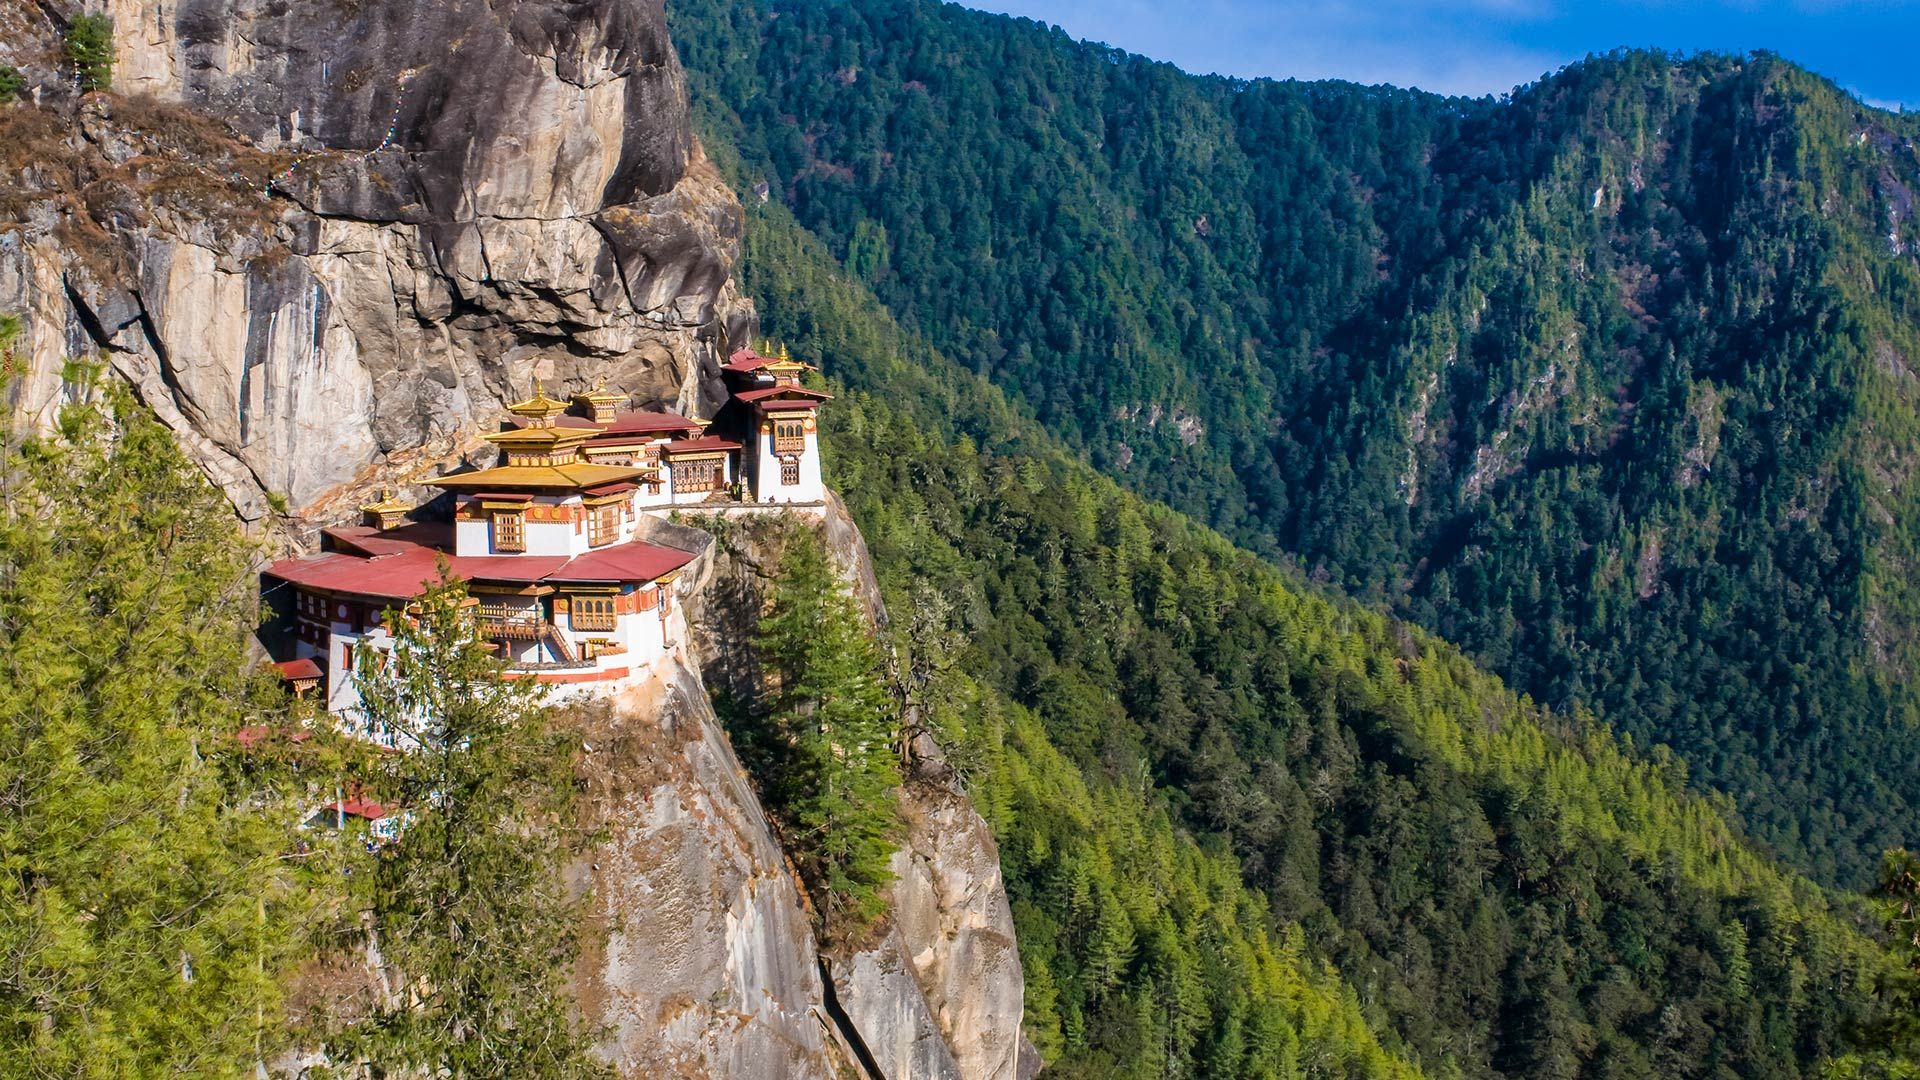 The iconic Tiger's Nest Monastery clinging to the hills near Paro, Bhutan